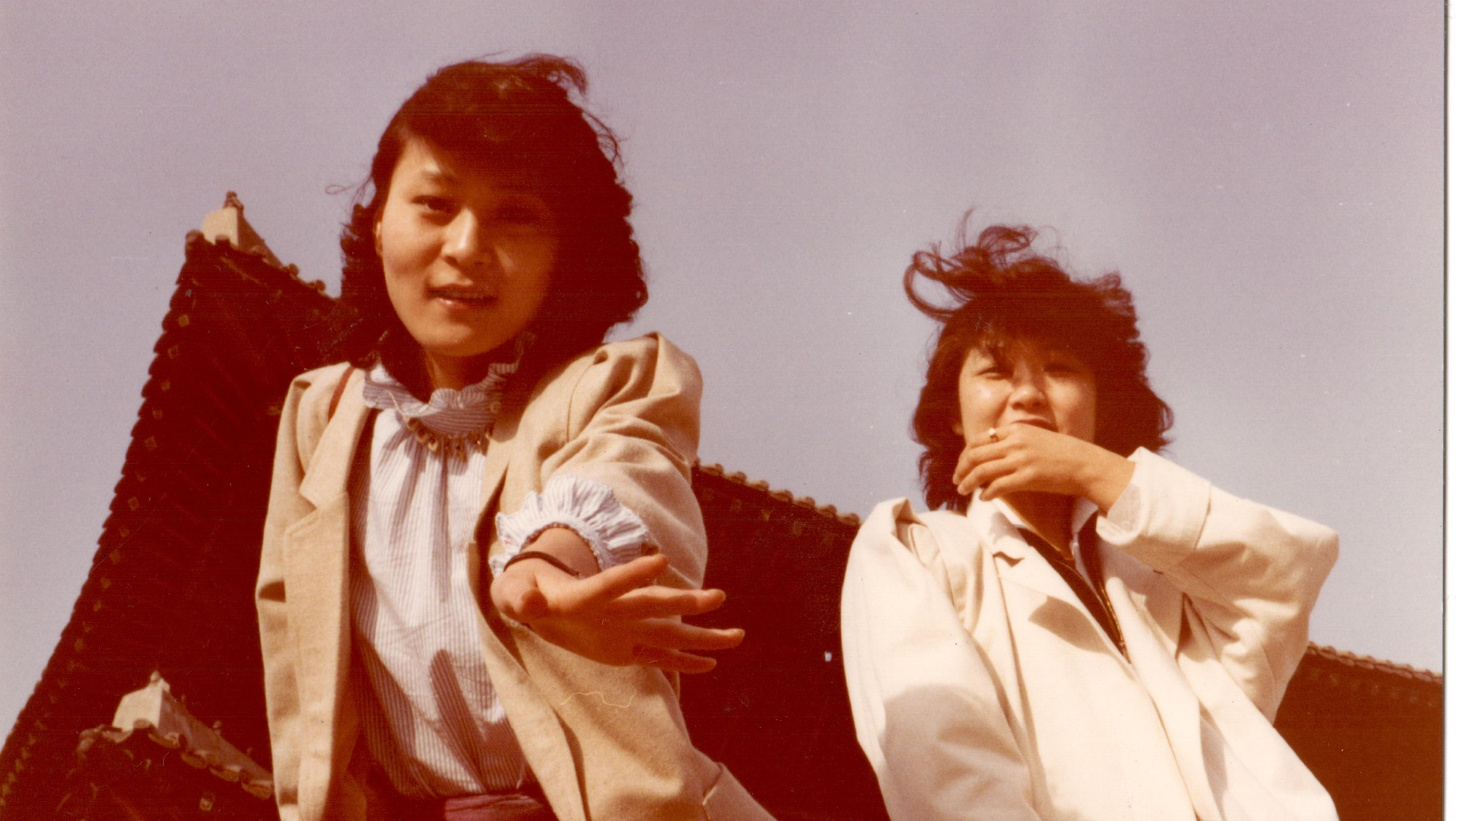 """Michelle Zauner, who records under the name Japanese Breakfast, featured her mother (left) on the cover art for her album, """"Psychopomp."""" Zauner's new memoir is a heartfelt reflection of loss and the comfort of food, family, and heritage."""